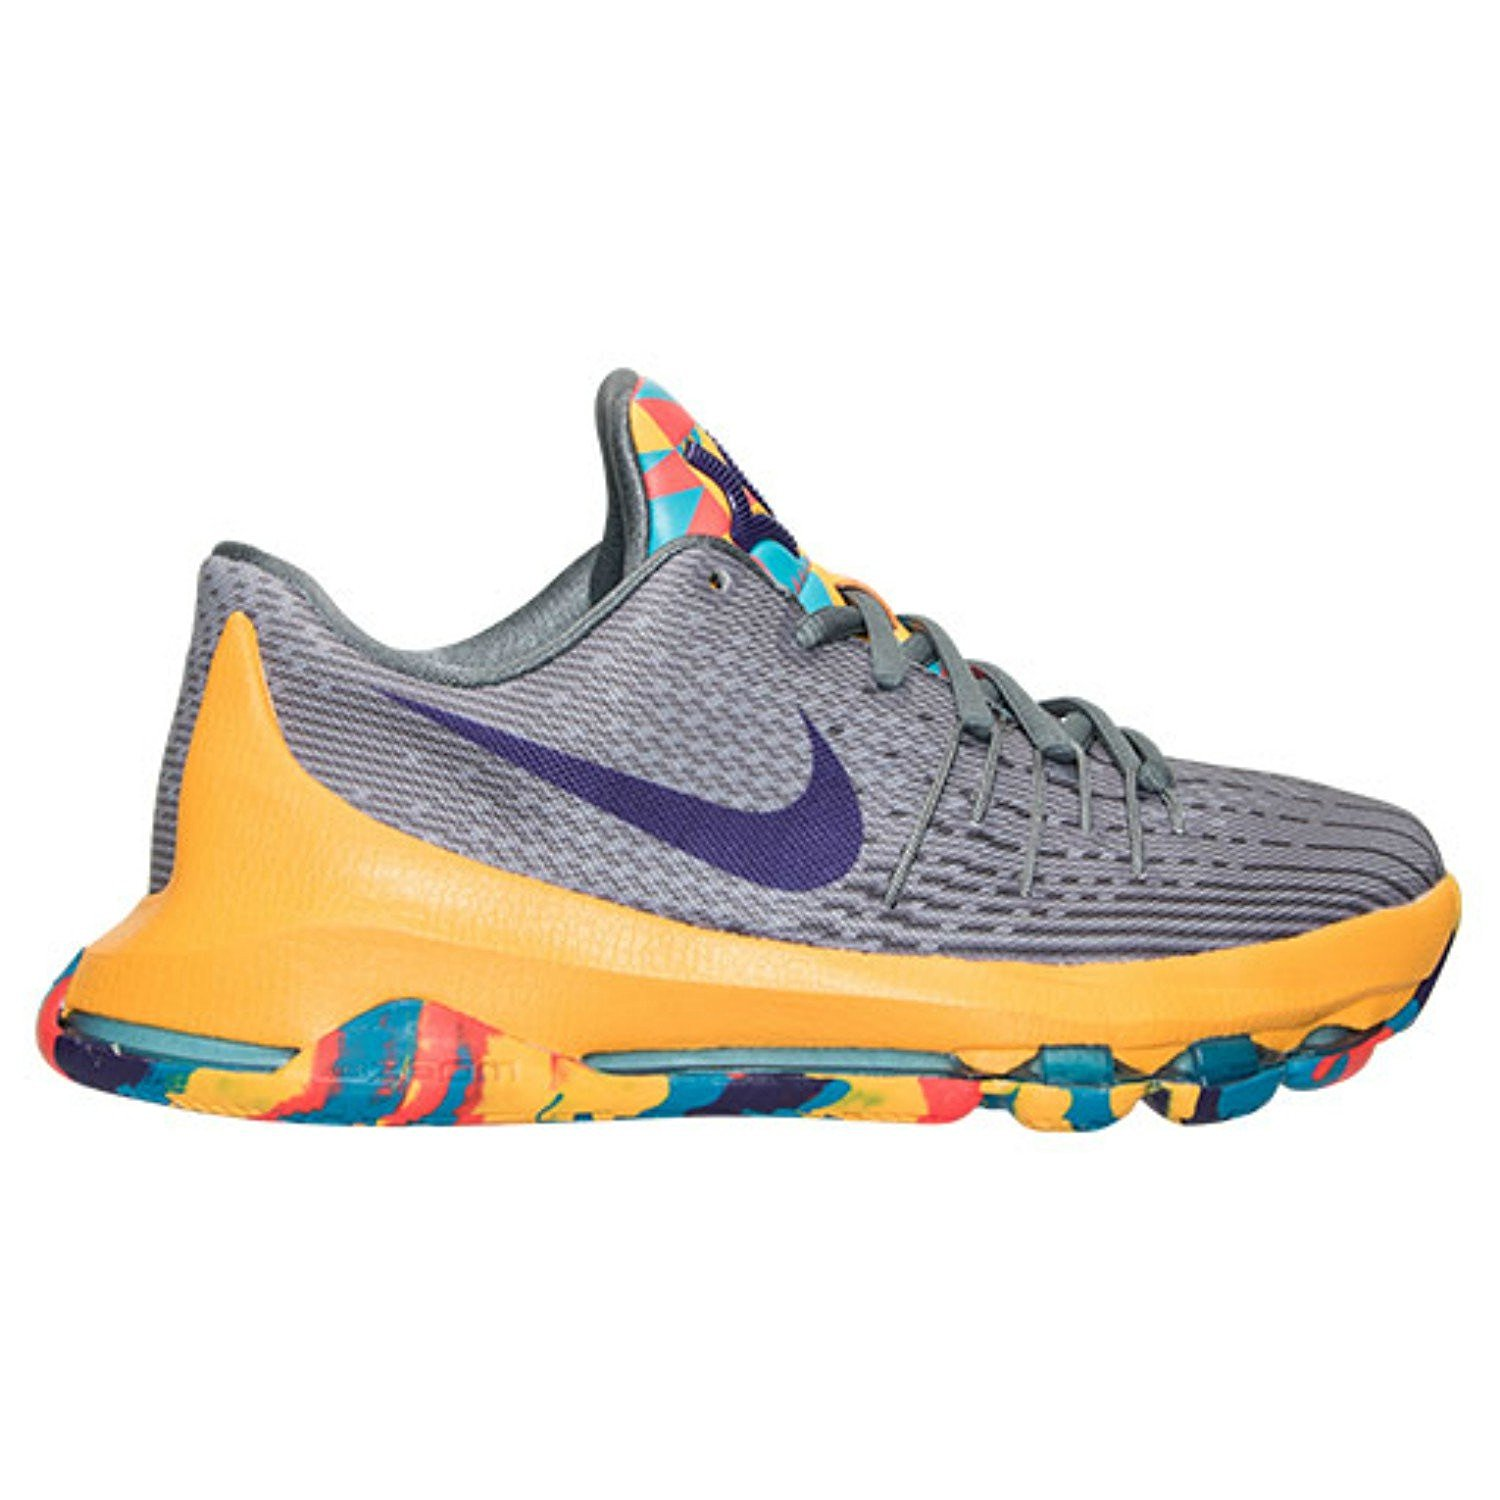 a05e2239b653 Get Quotations · Nike KD 8 Youth Basketball Shoe (6 M US)